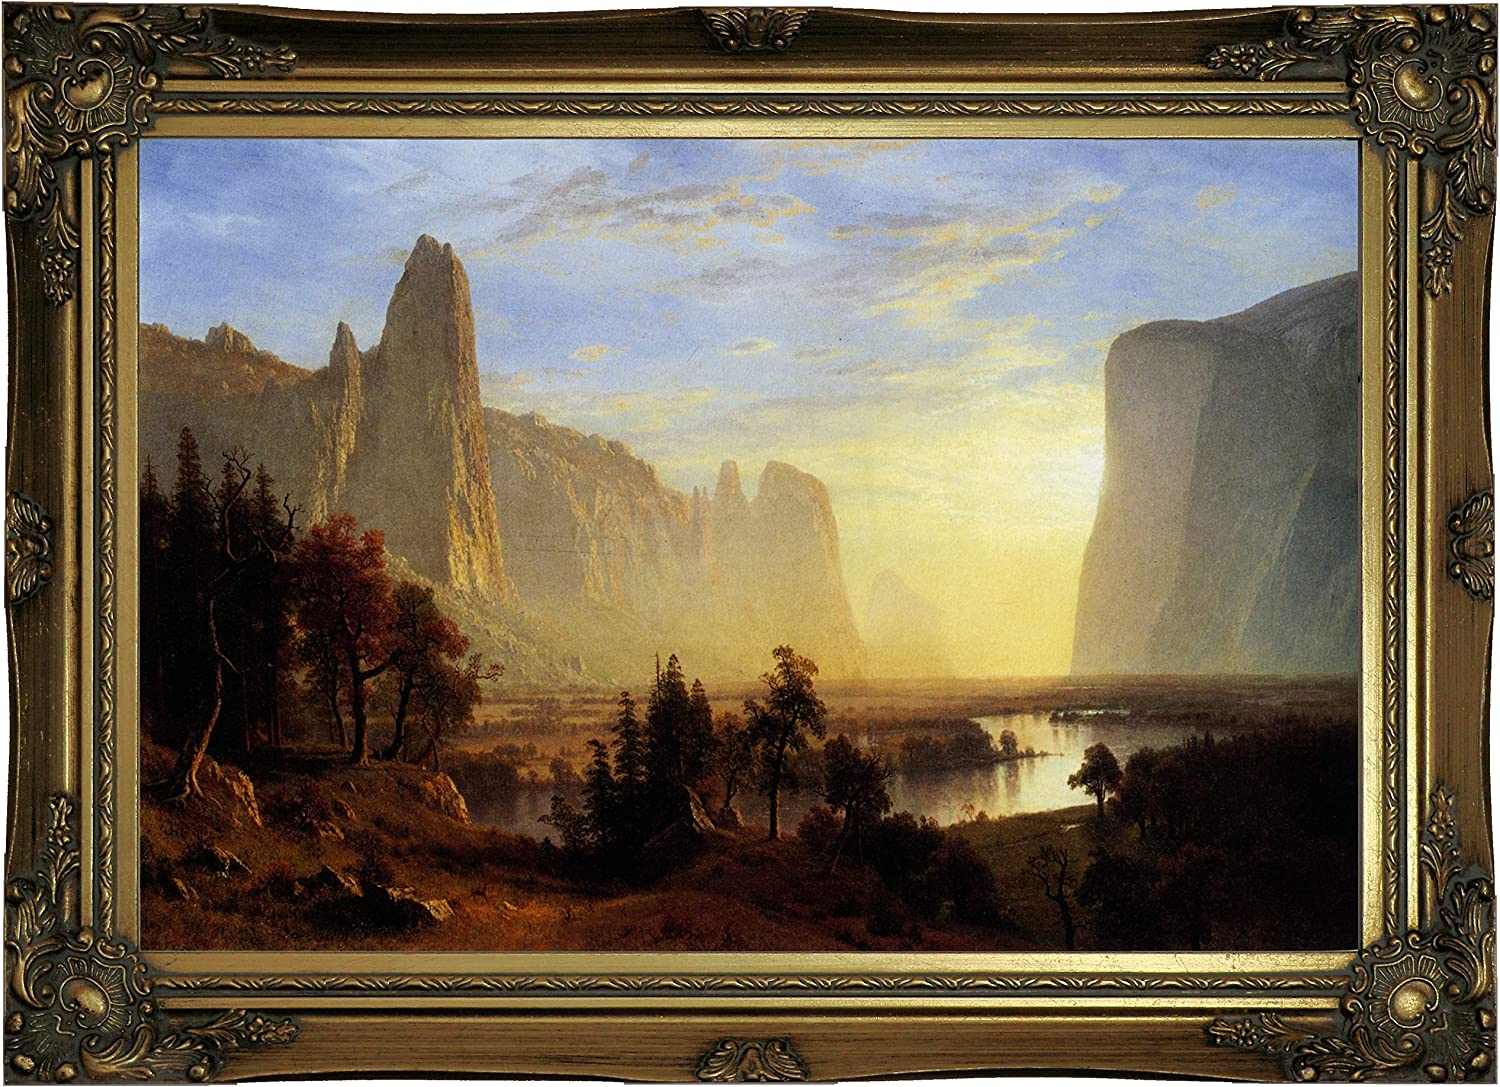 THE DOMES OF YOSEMITE /& VALLEY LANDSCAPE PAINTING ART REAL CANVAS PRINT